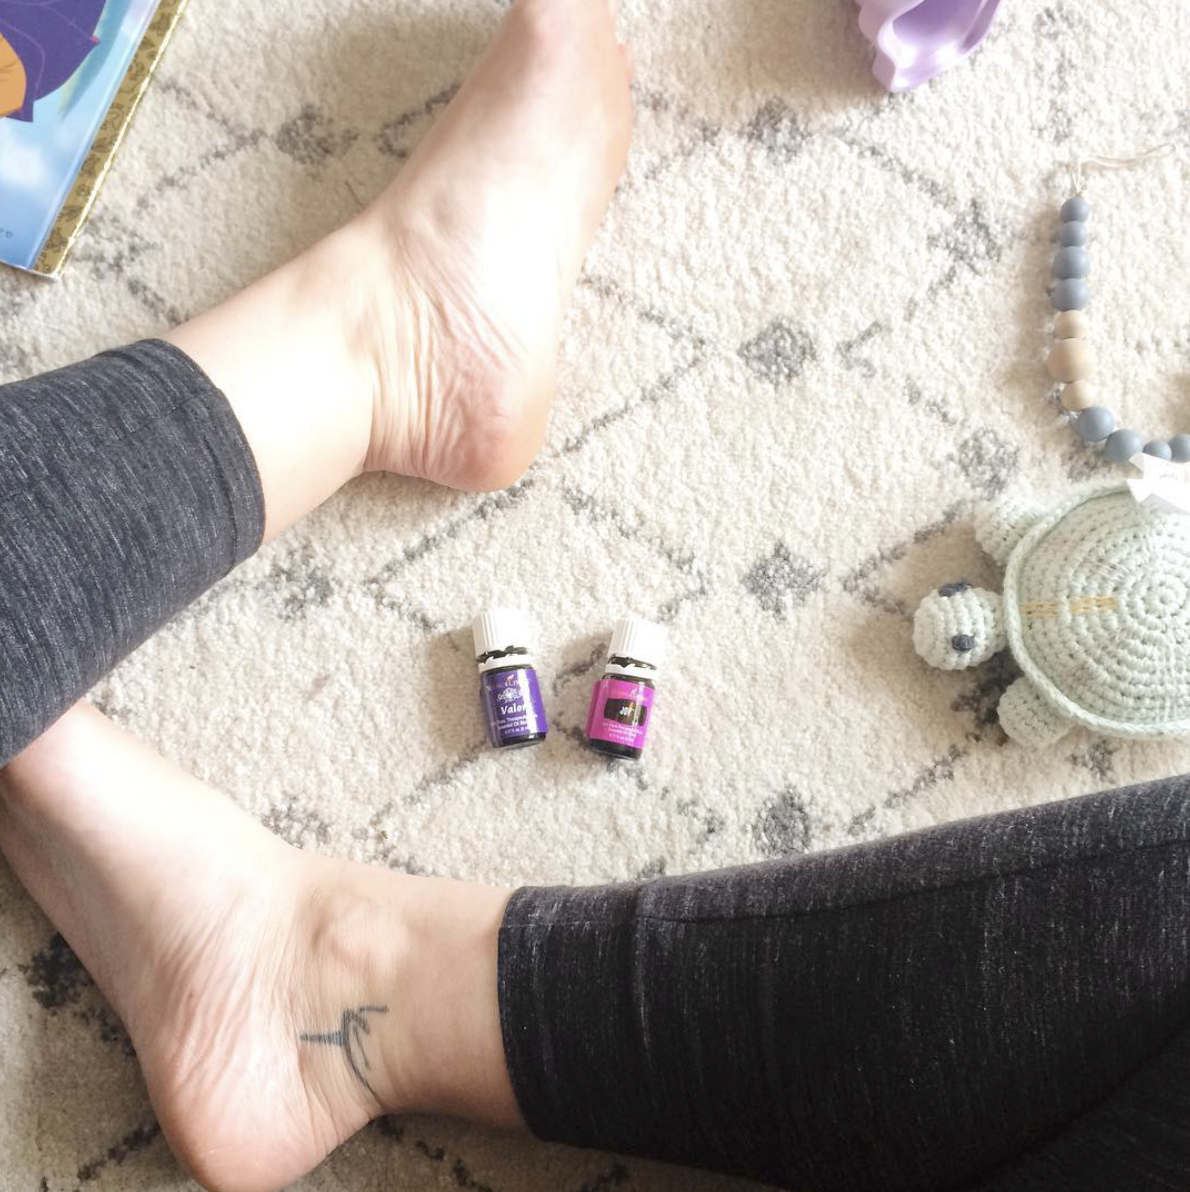 Turning to my essential oils for support during an exhausting day after no sleep the night before. For more on that, read about  essential oils  on our blog!